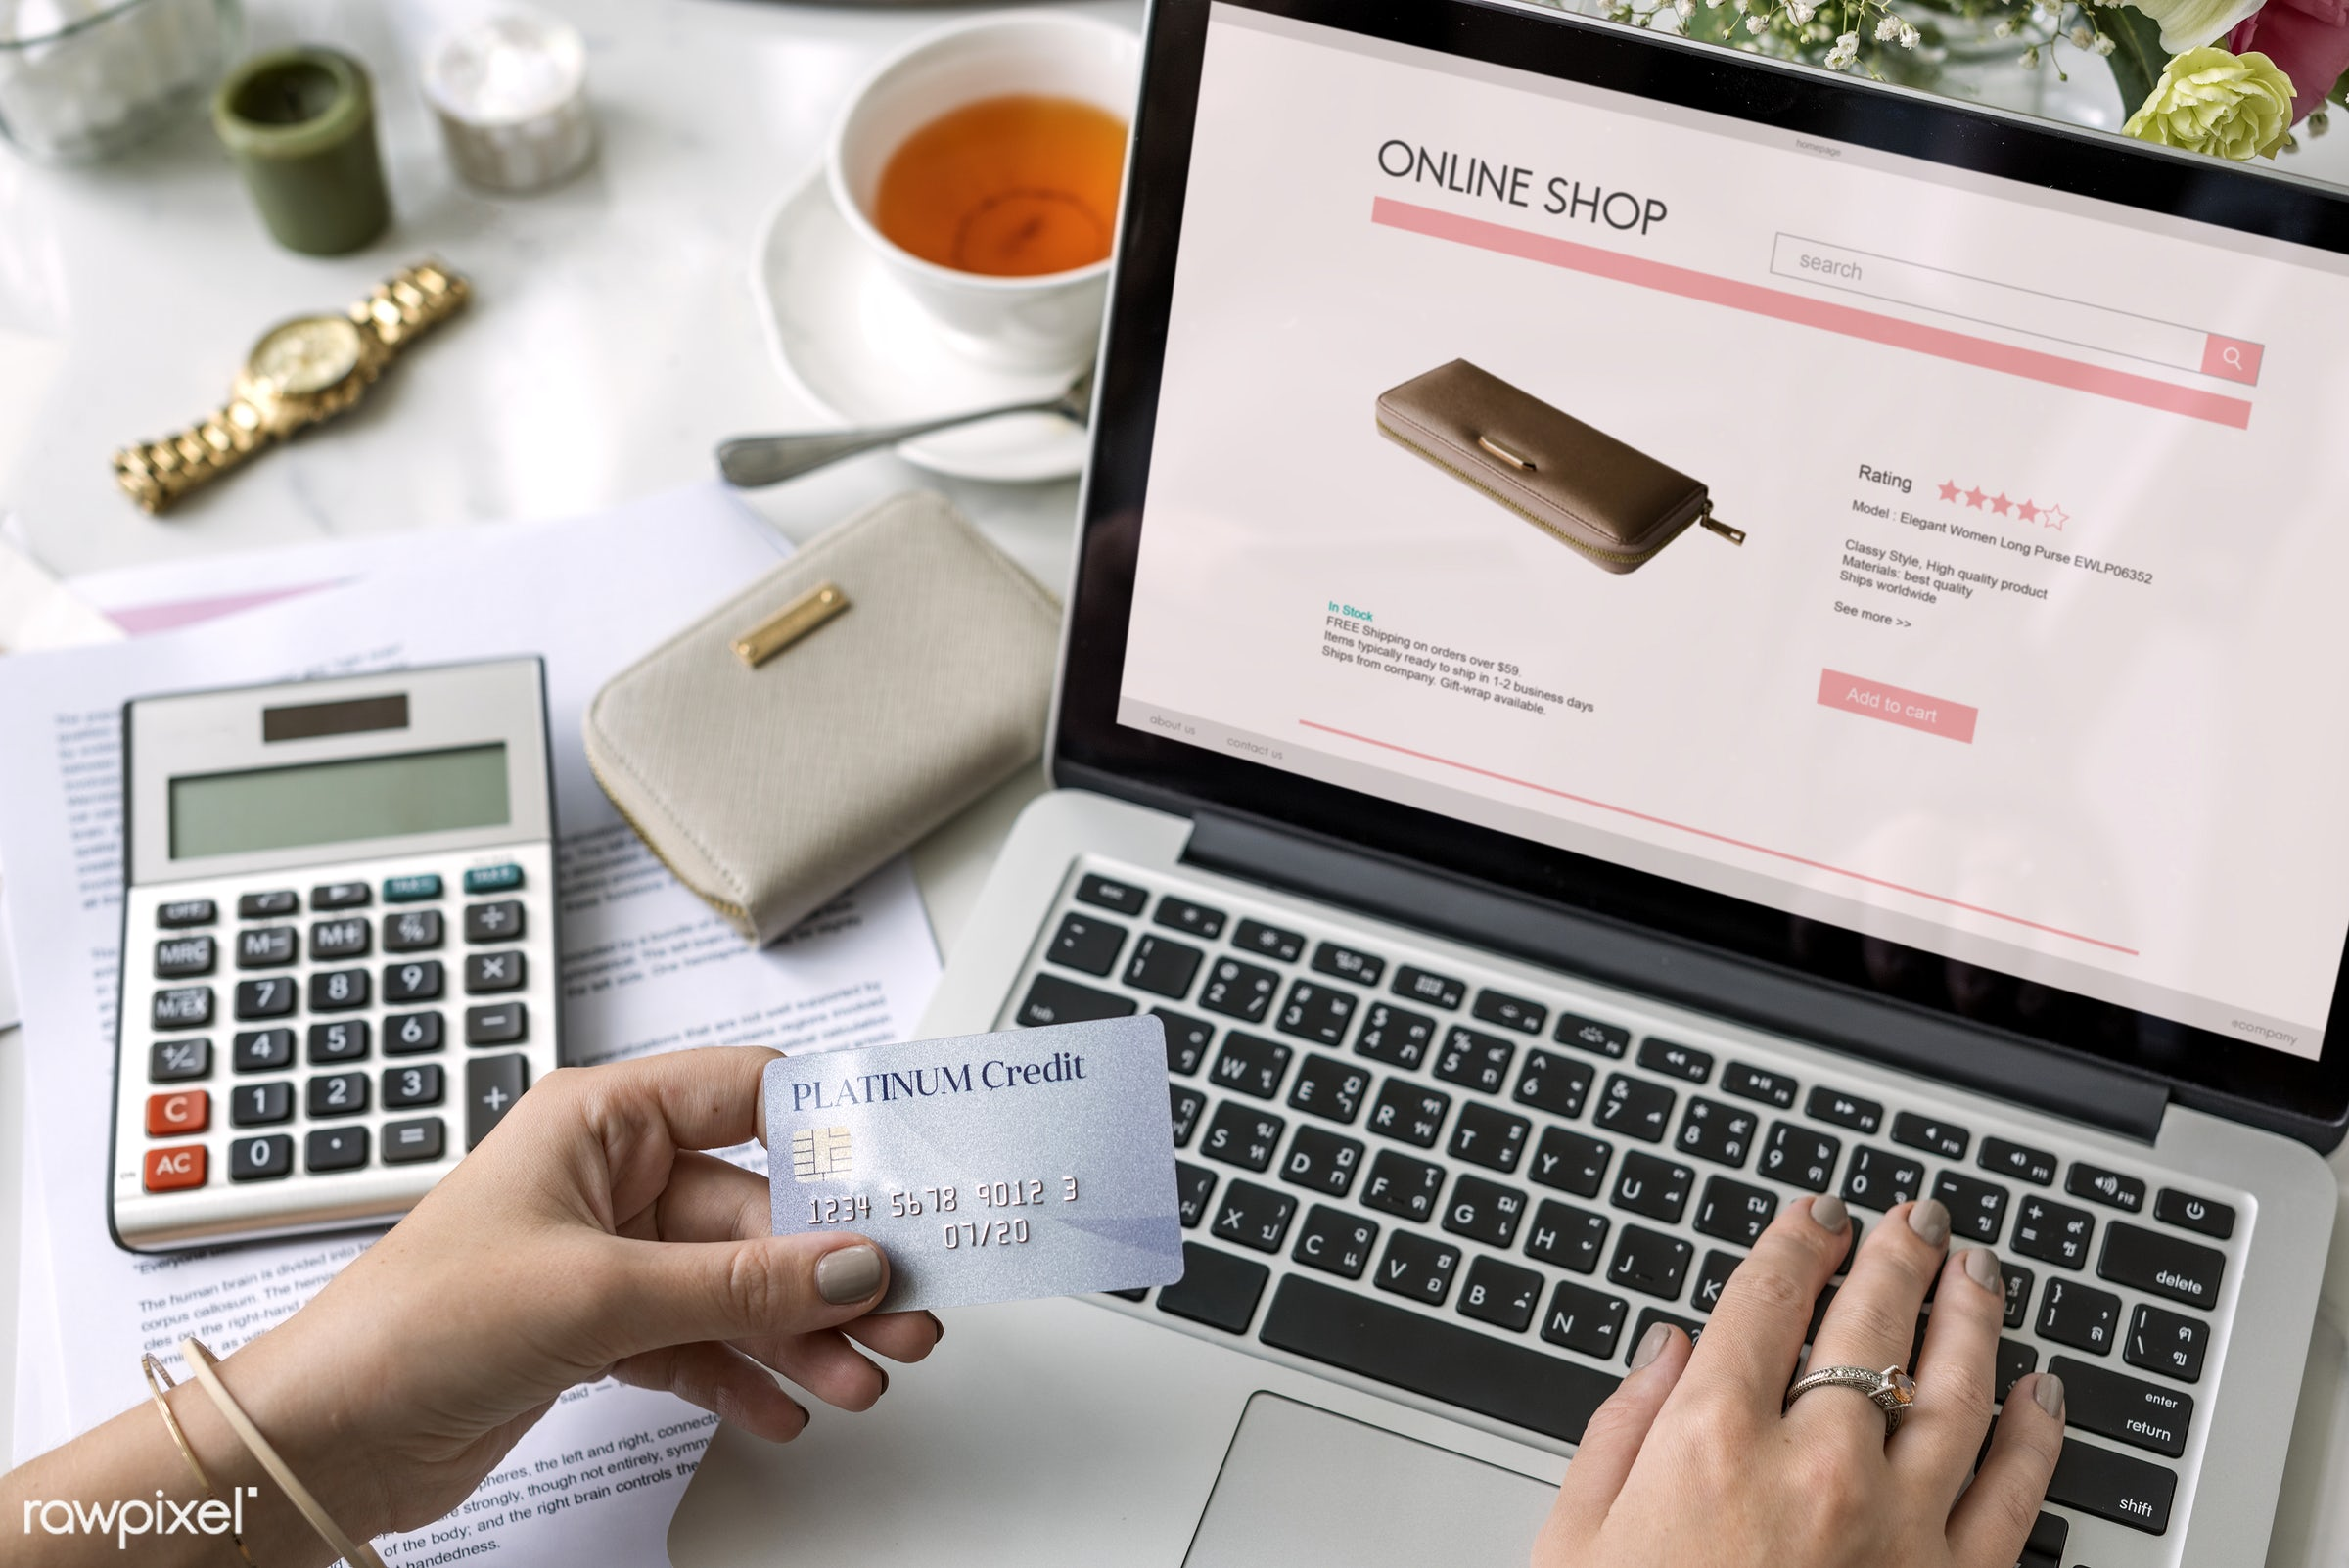 card, commerce, communication, computer, connect, connection, convenience, credit card, customer, debit card, device,...